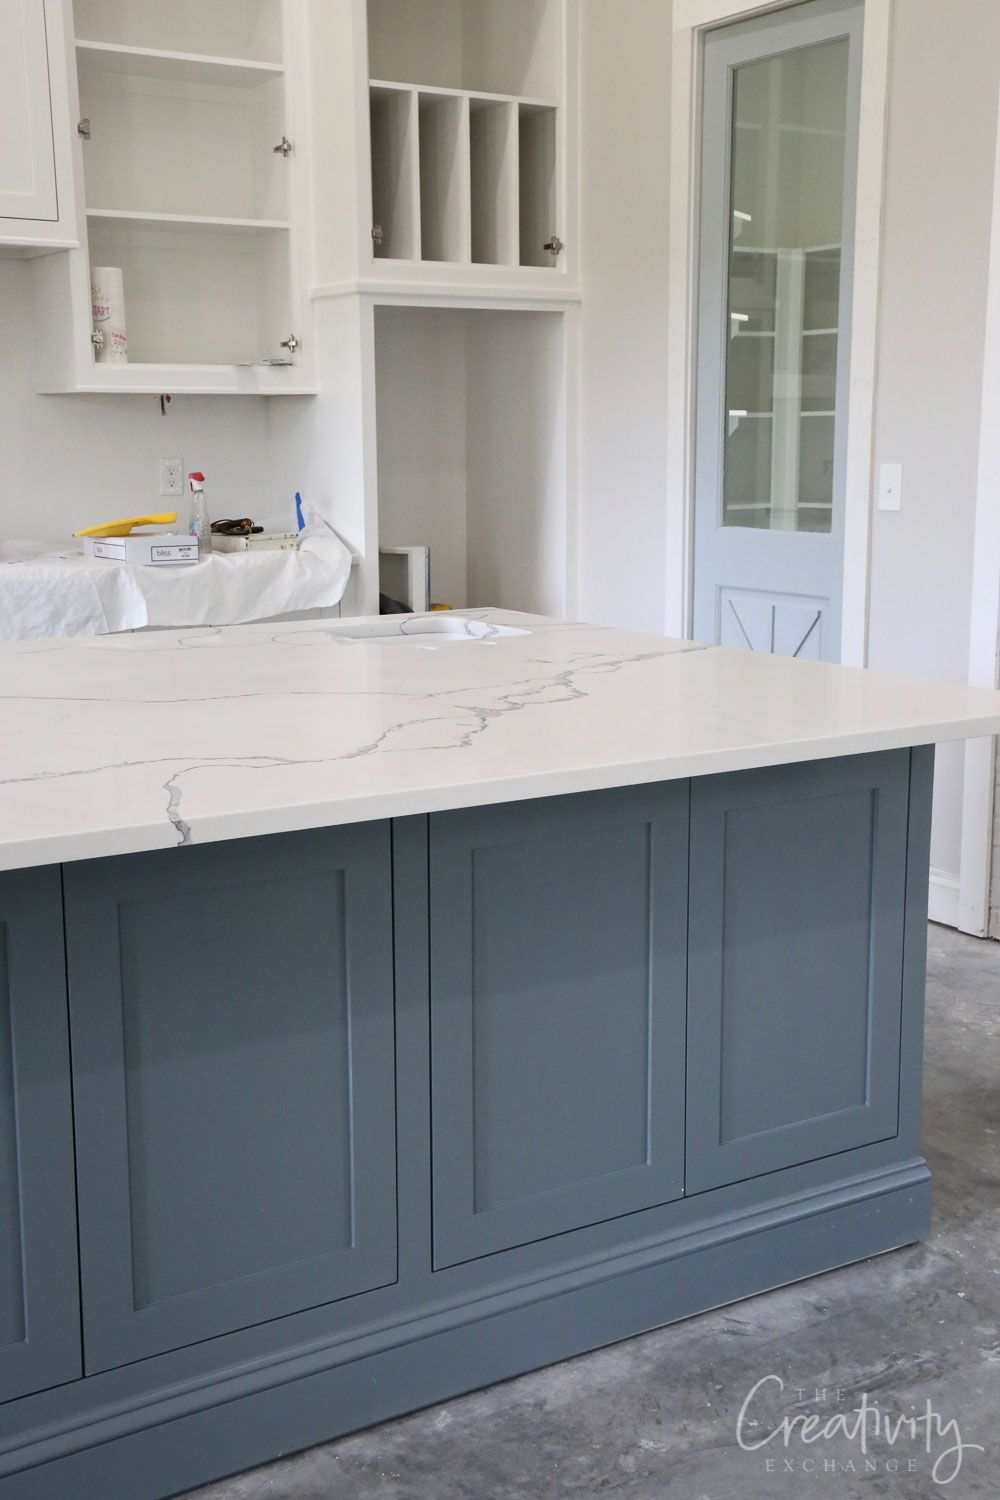 How to Create a Custom Paint Color Mix - Grey kitchen island, Grey blue kitchen, Kitchen island different colour, Blue kitchen island, Grey kitchen, Painted kitchen island - We're sharing easy tips for how to create a custom paint color mix for your walls, cabinetry and exterior